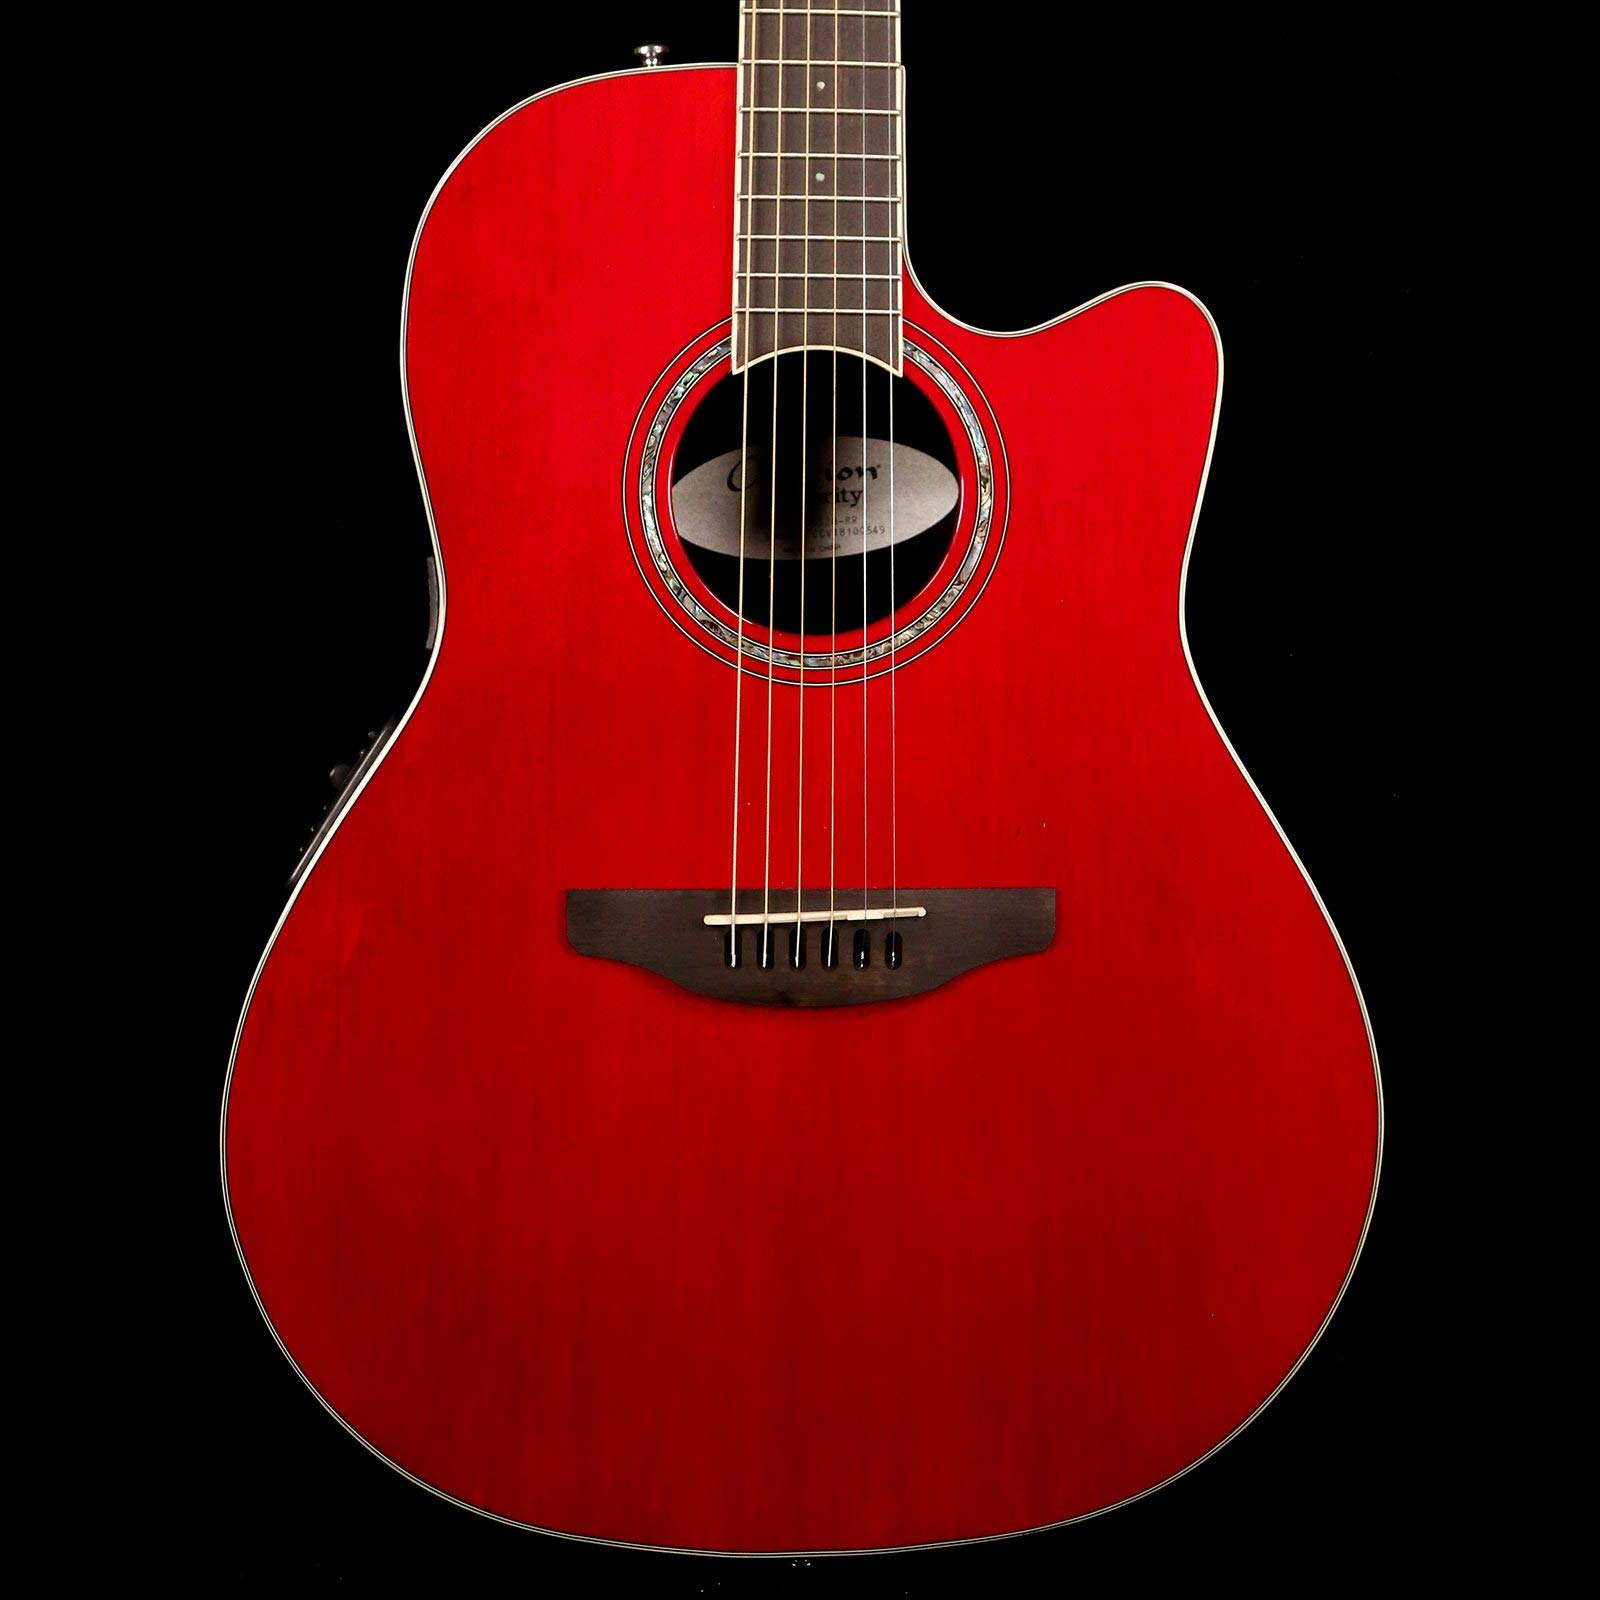 Ovation Celebrity Standard Solid Spruce Top Acoustic-Electric Guitar, Ruby Red by Ovation